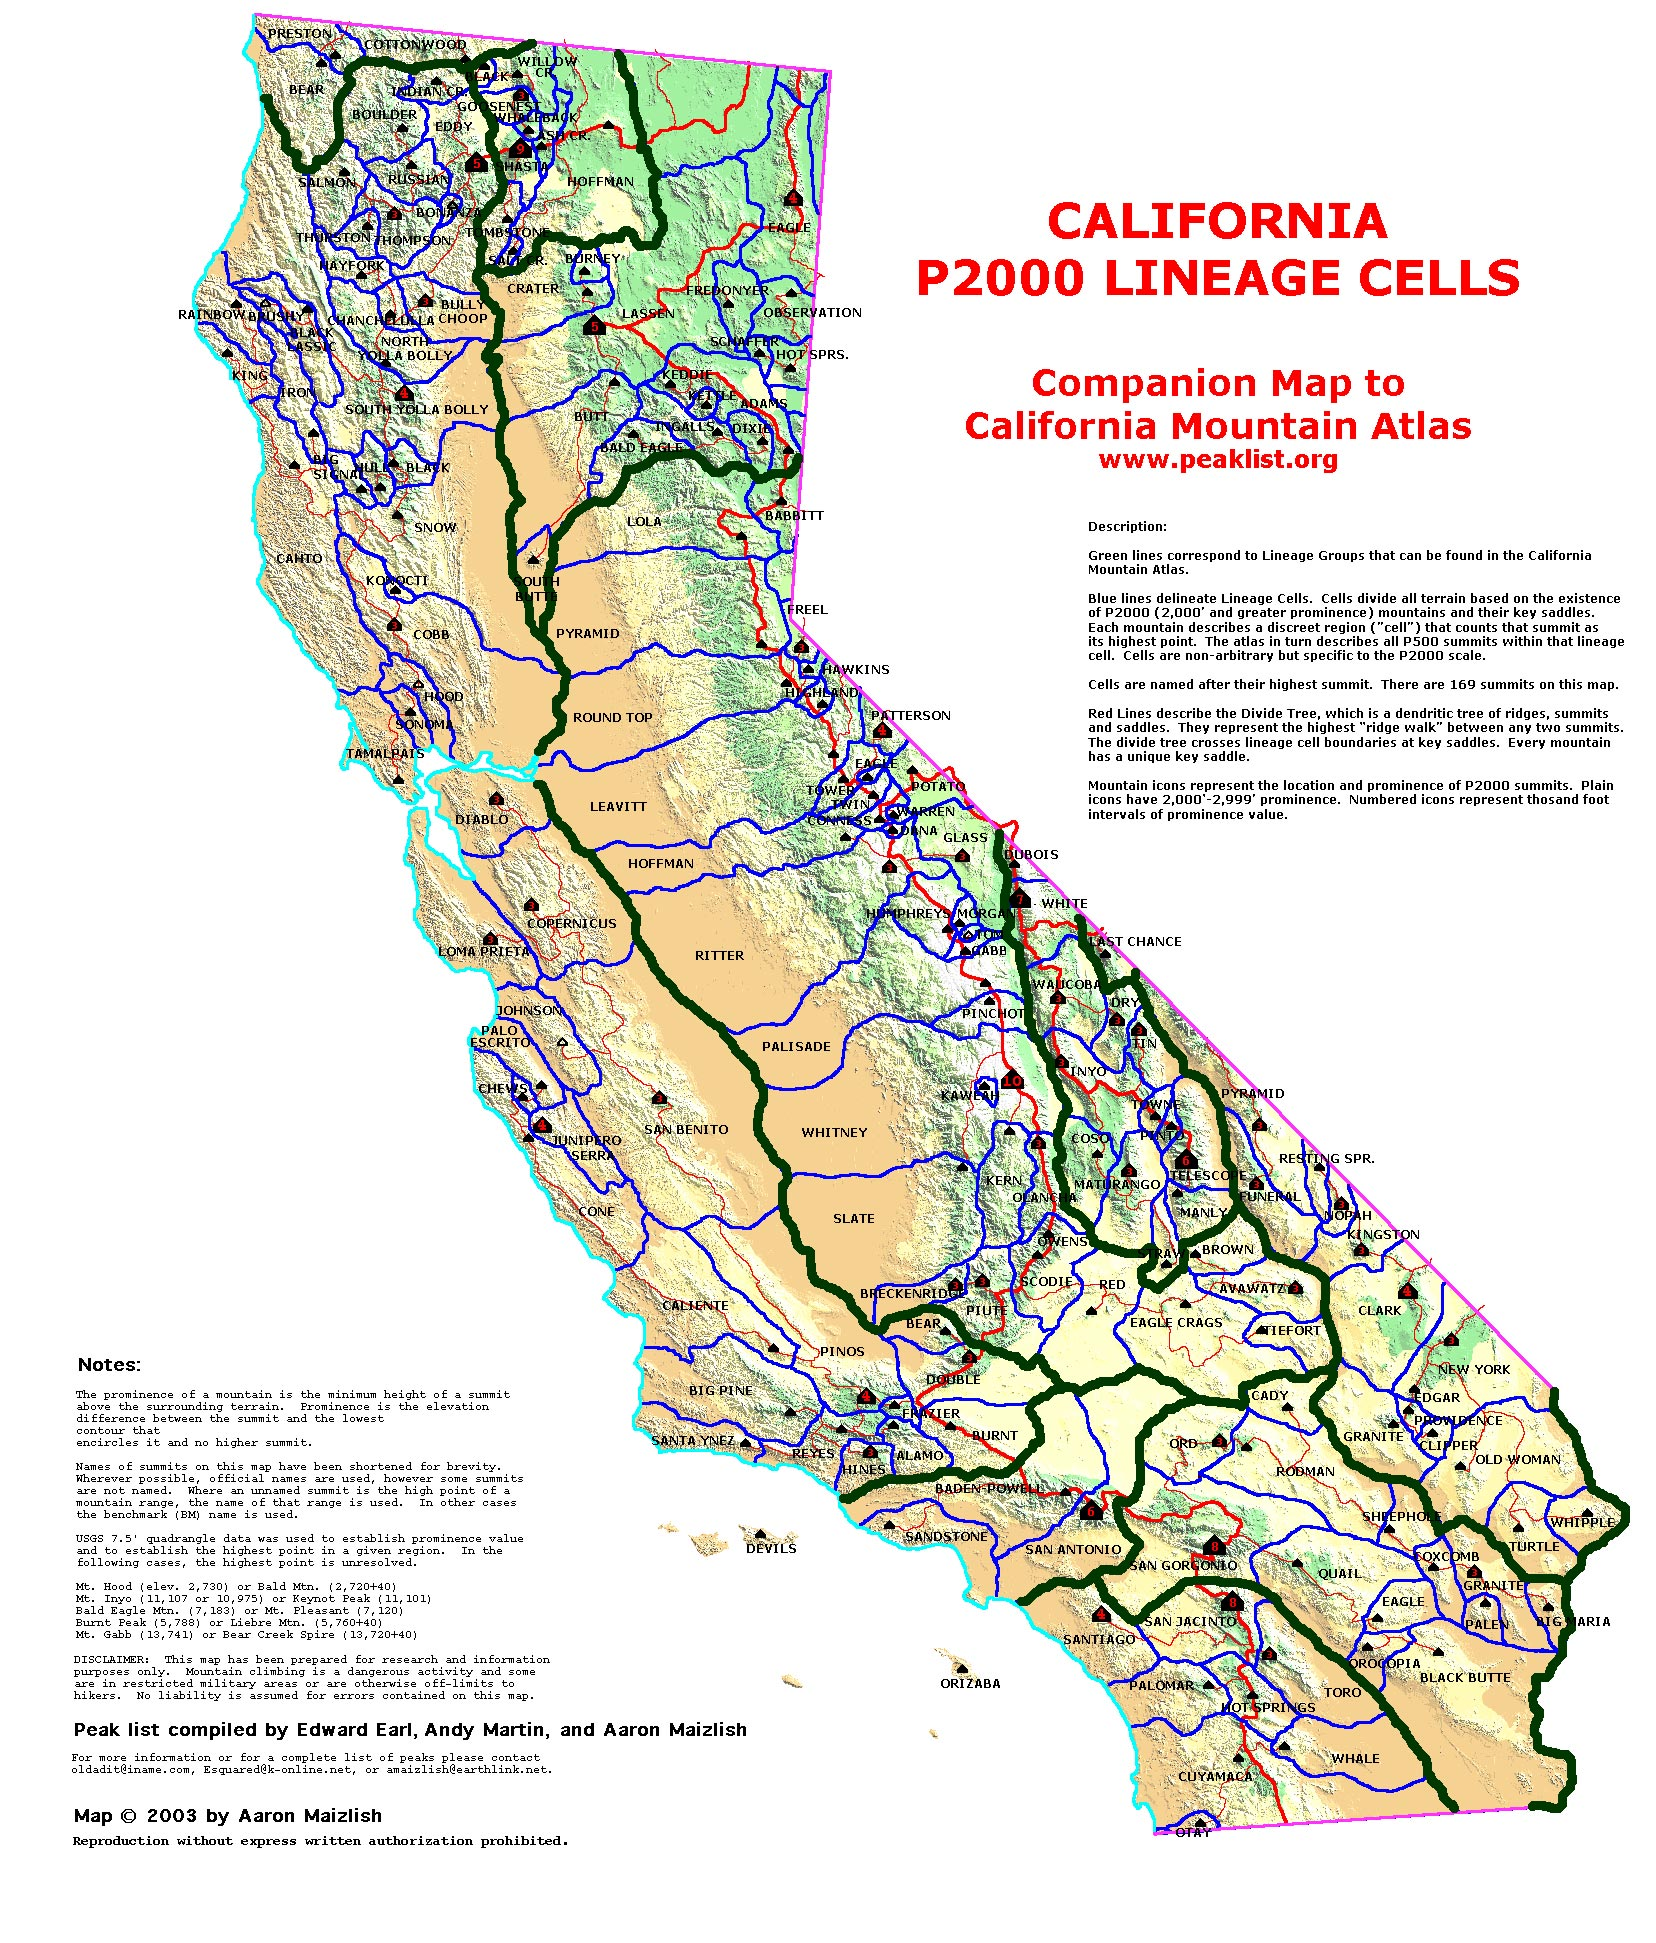 California Mountain Atlas Notes and Legend